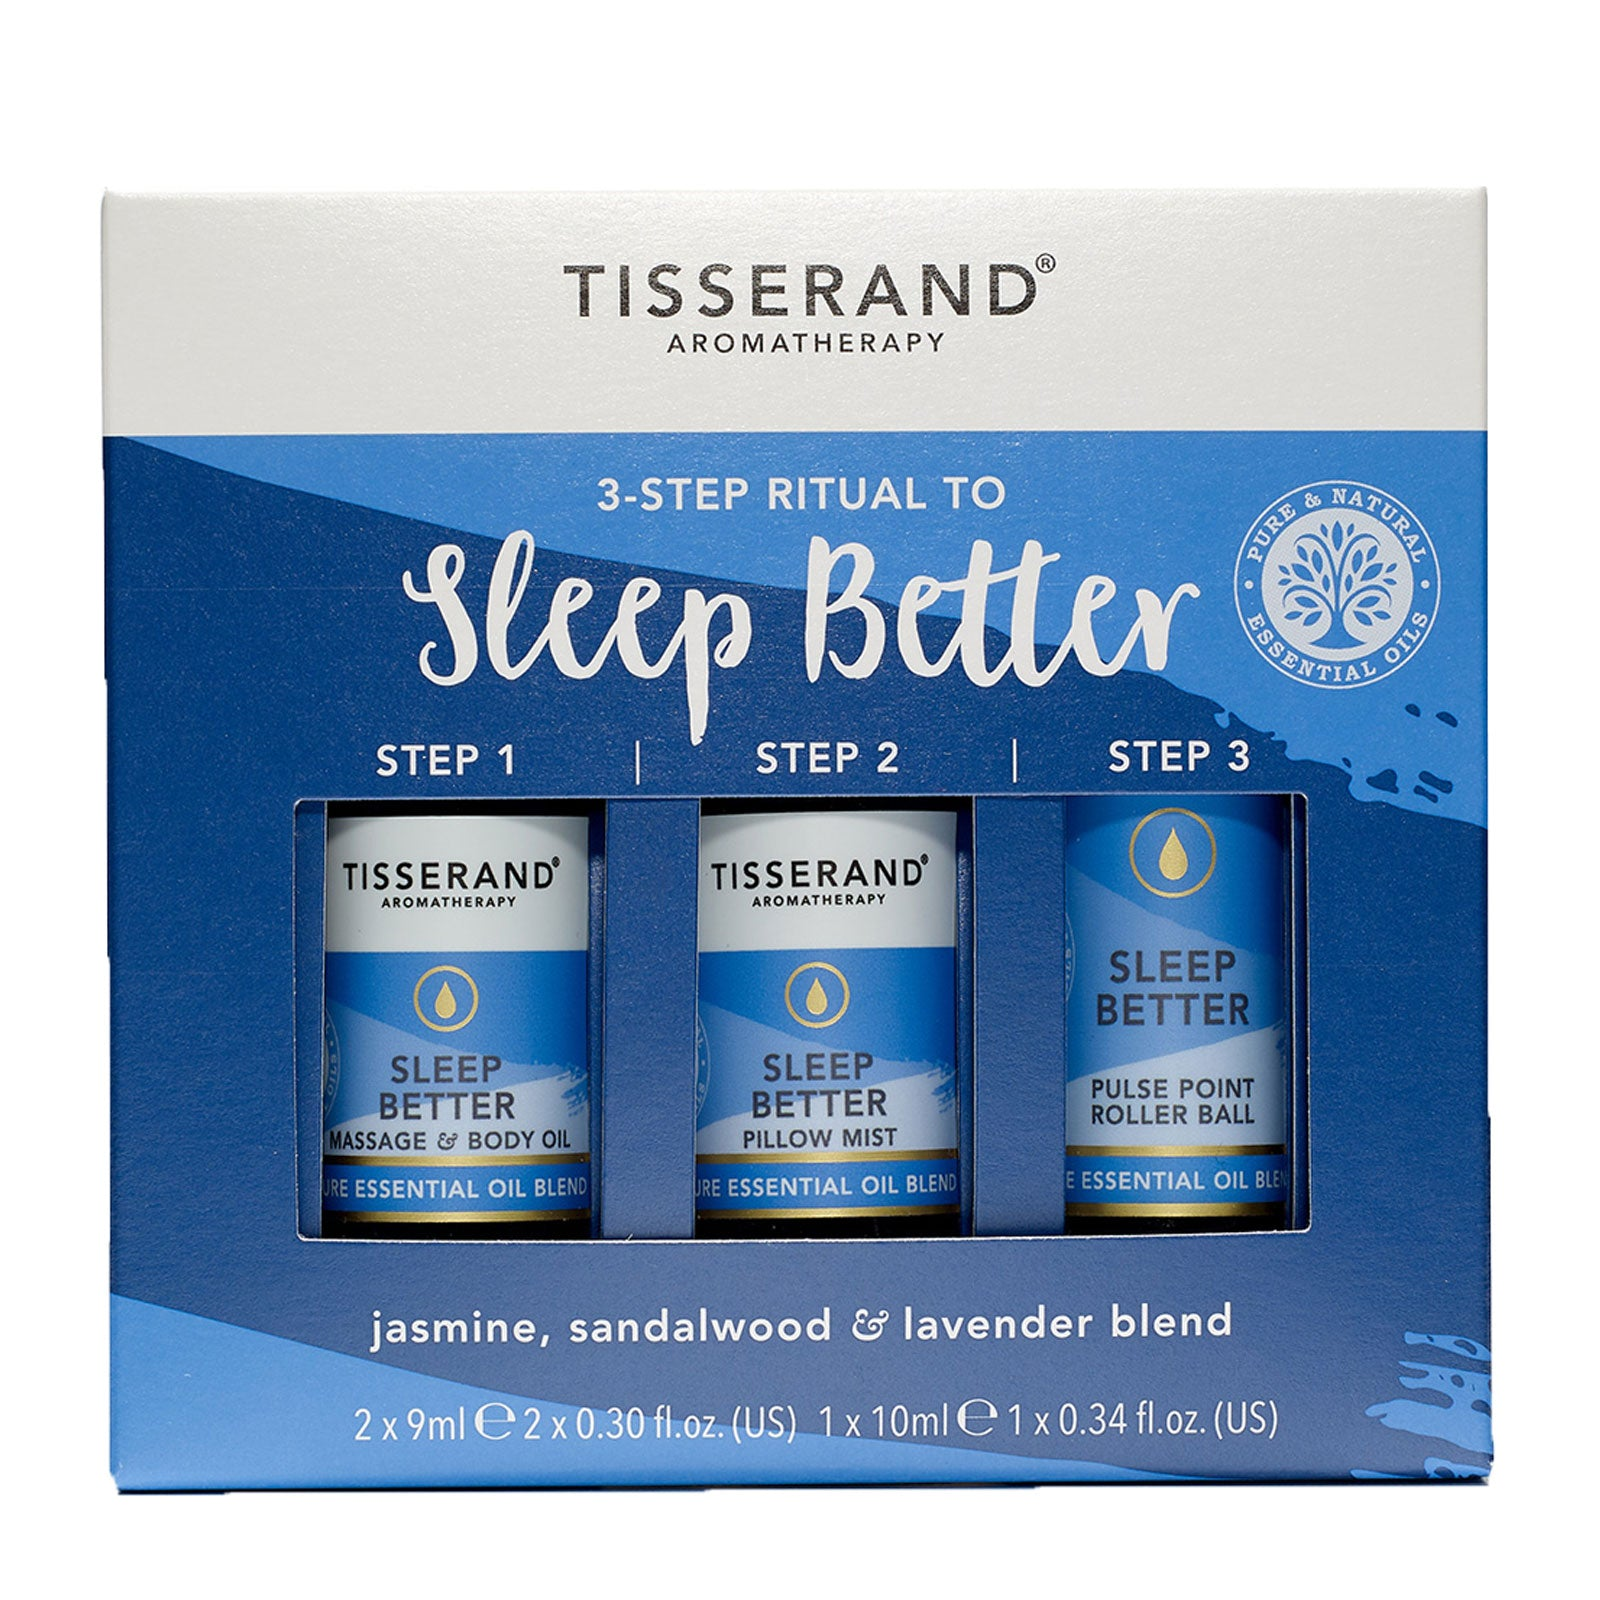 Tisserand Aromatherapy 3-Step Ritual to Sleep Better 3 x 10ml